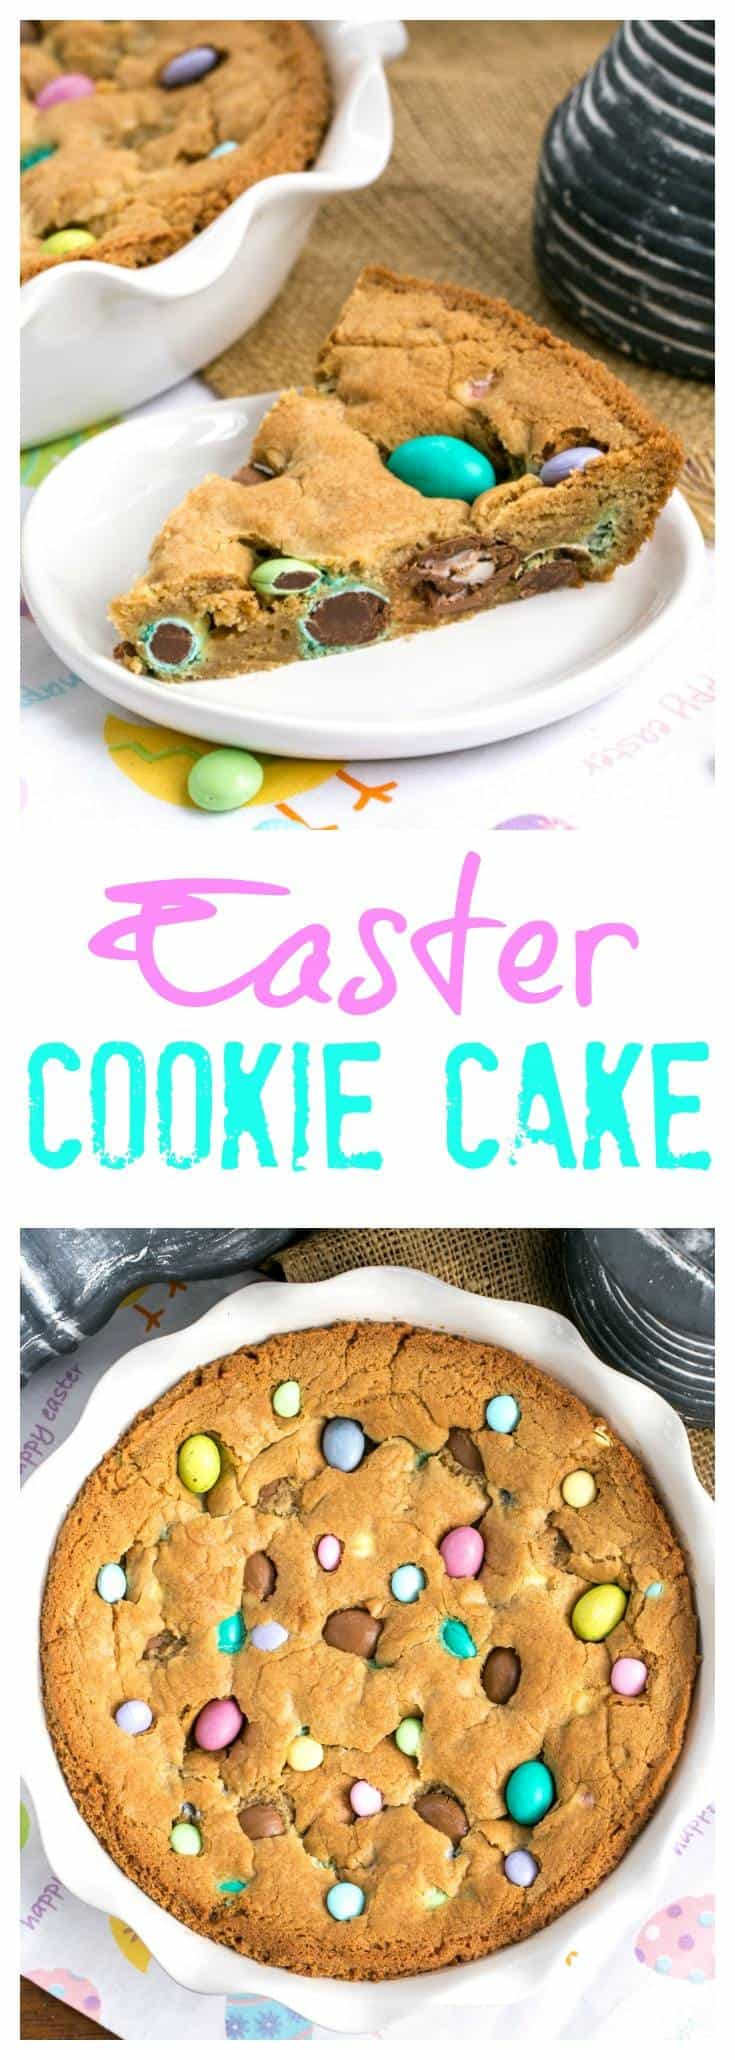 Easter Cookie Cake | A giant, chewy cookie packed full of chocolate chips and Easter candy #Easter #cookie #cookiecake #candy